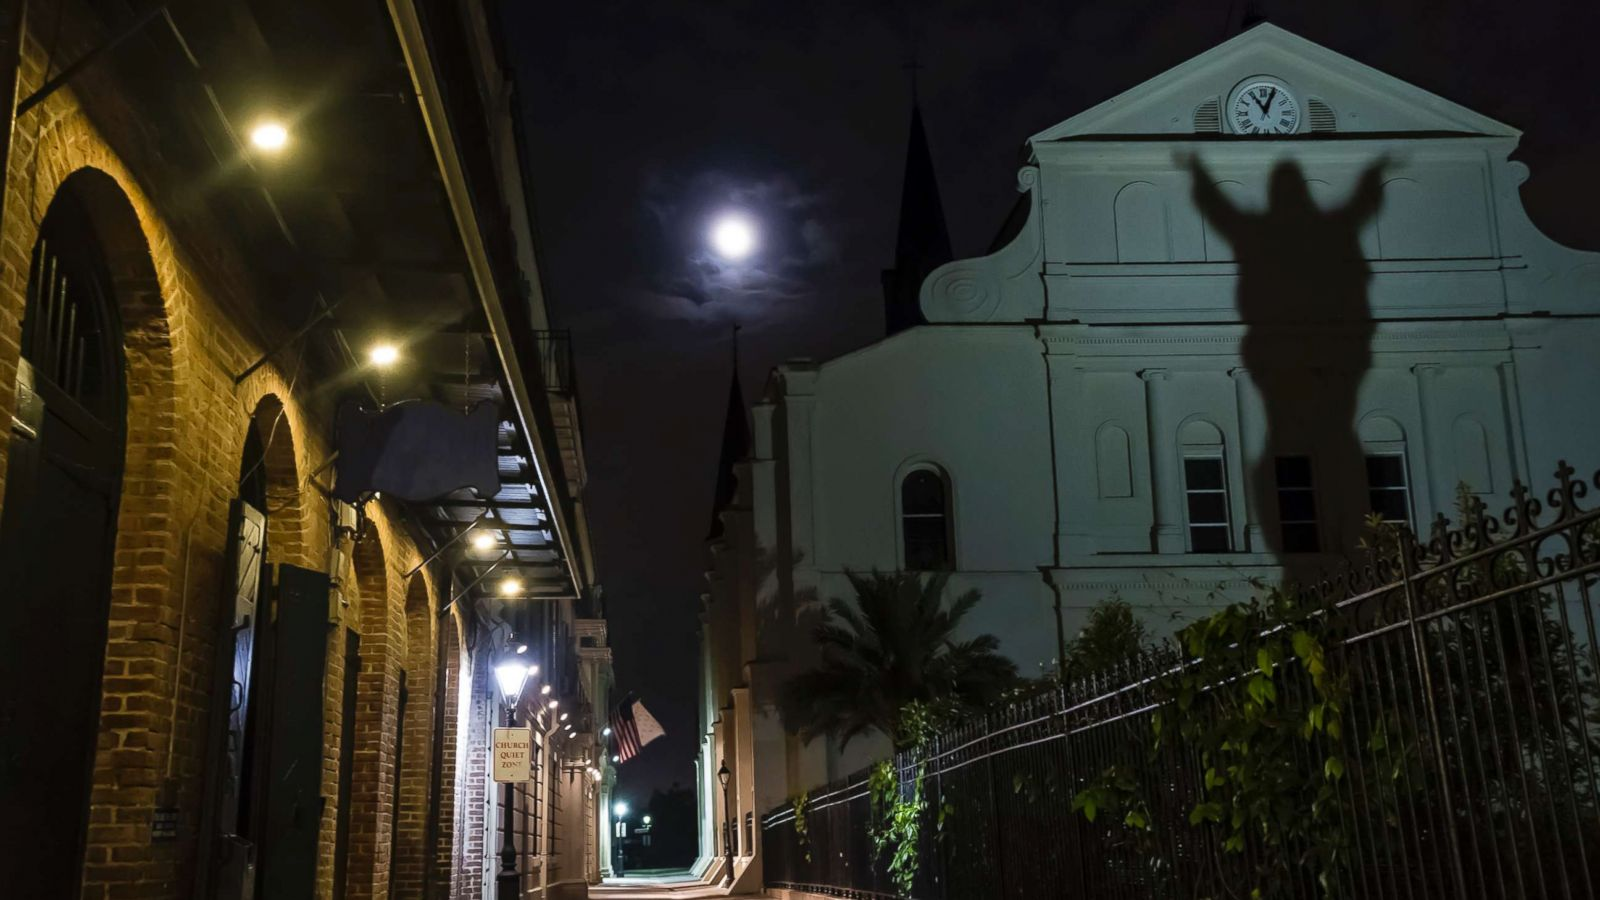 Top 10 fastest growing ghost tours in the US to check out this Halloween -  ABC News